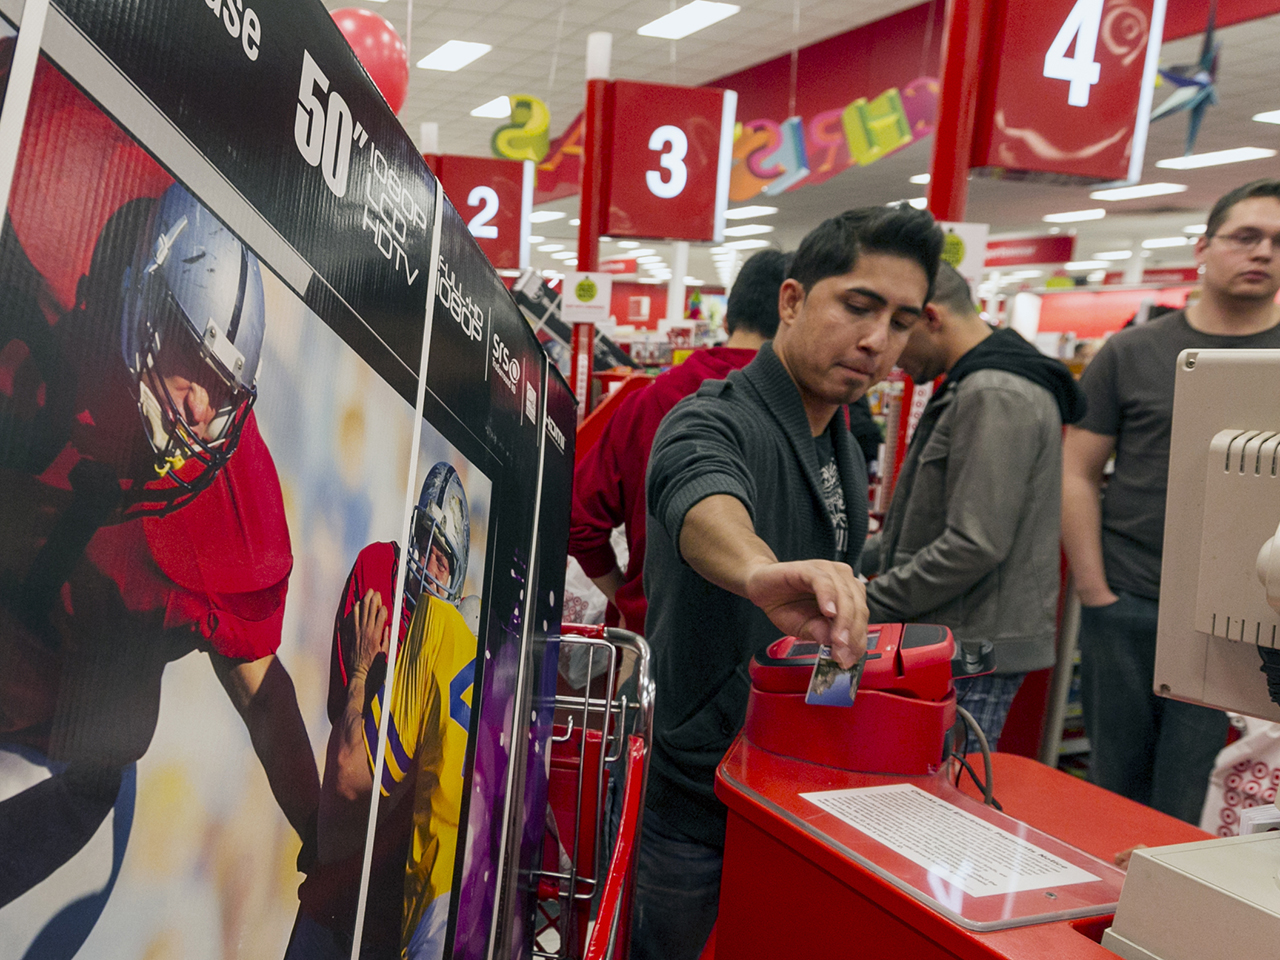 A customer swipes his credit card to pau for a television doorbuster deal at a Target store in Burbank, Calif., on Nov. 22, 2012.